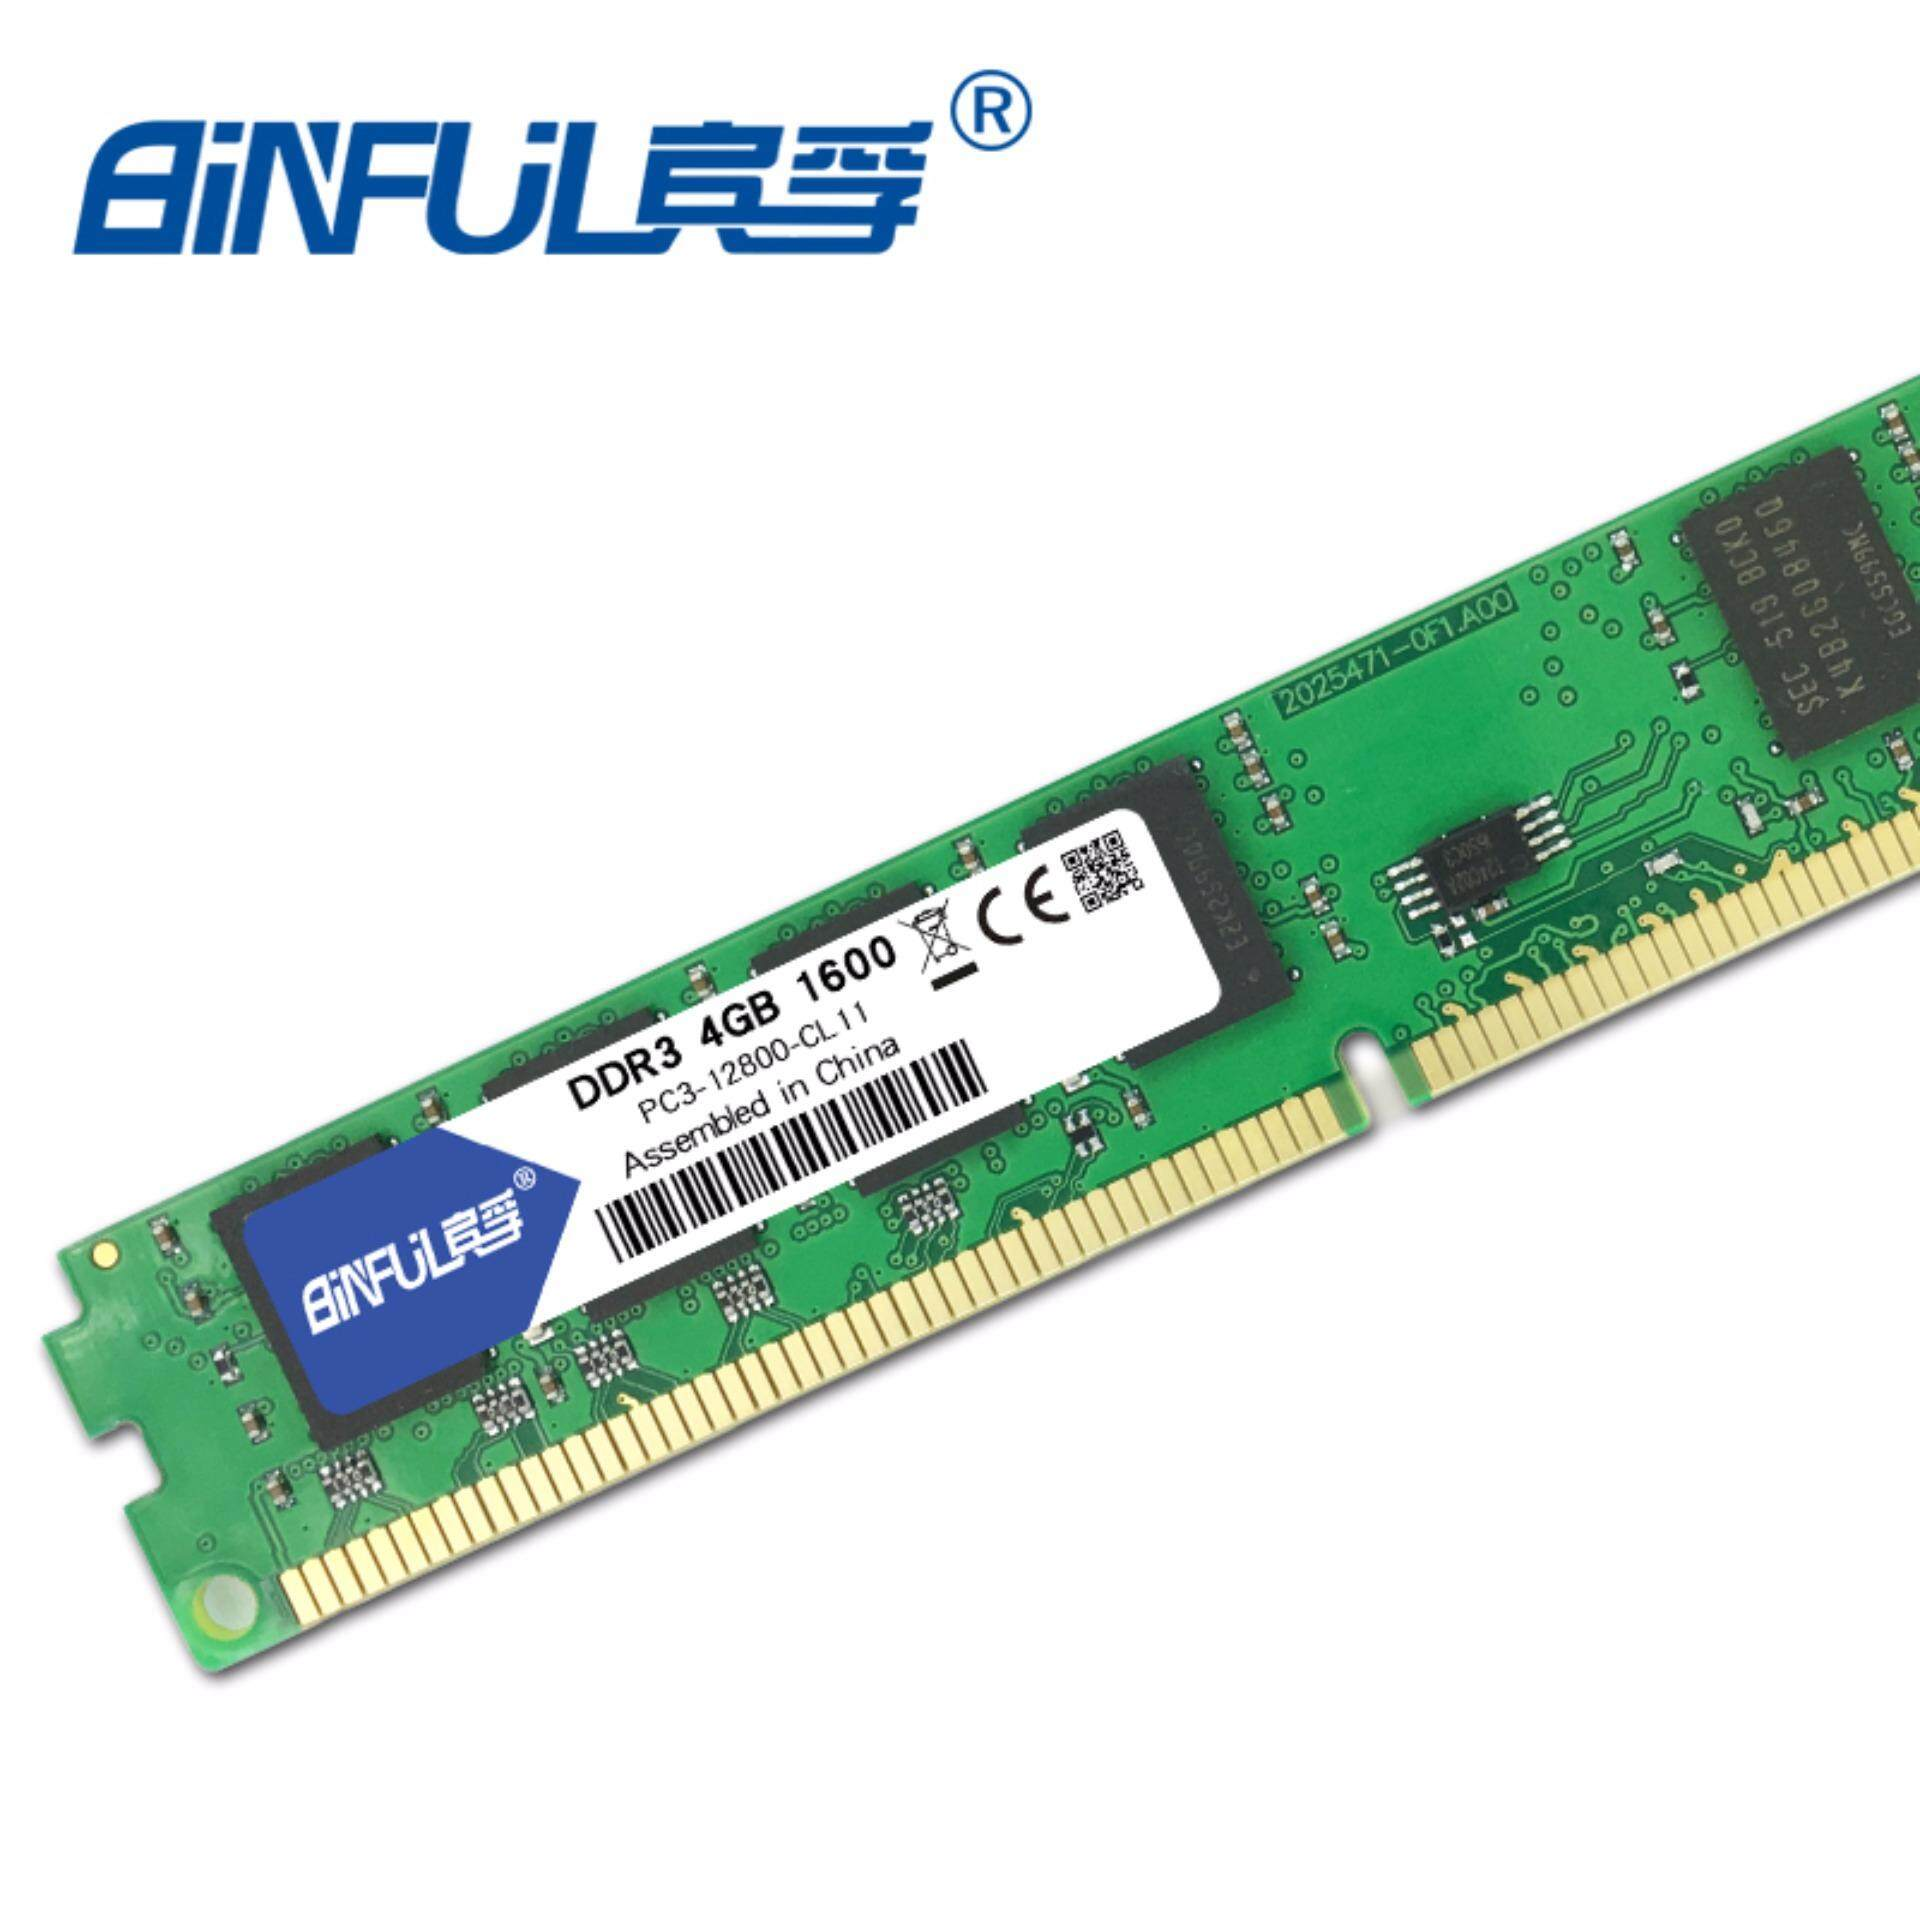 Hongweichuangxing Store Memori Pc Ddr3 4gb 12800 Binful 1600mhz Memory Ram Desktop Pc3 Dimm 15v Compatible With All Motherboards Intlsgd3500